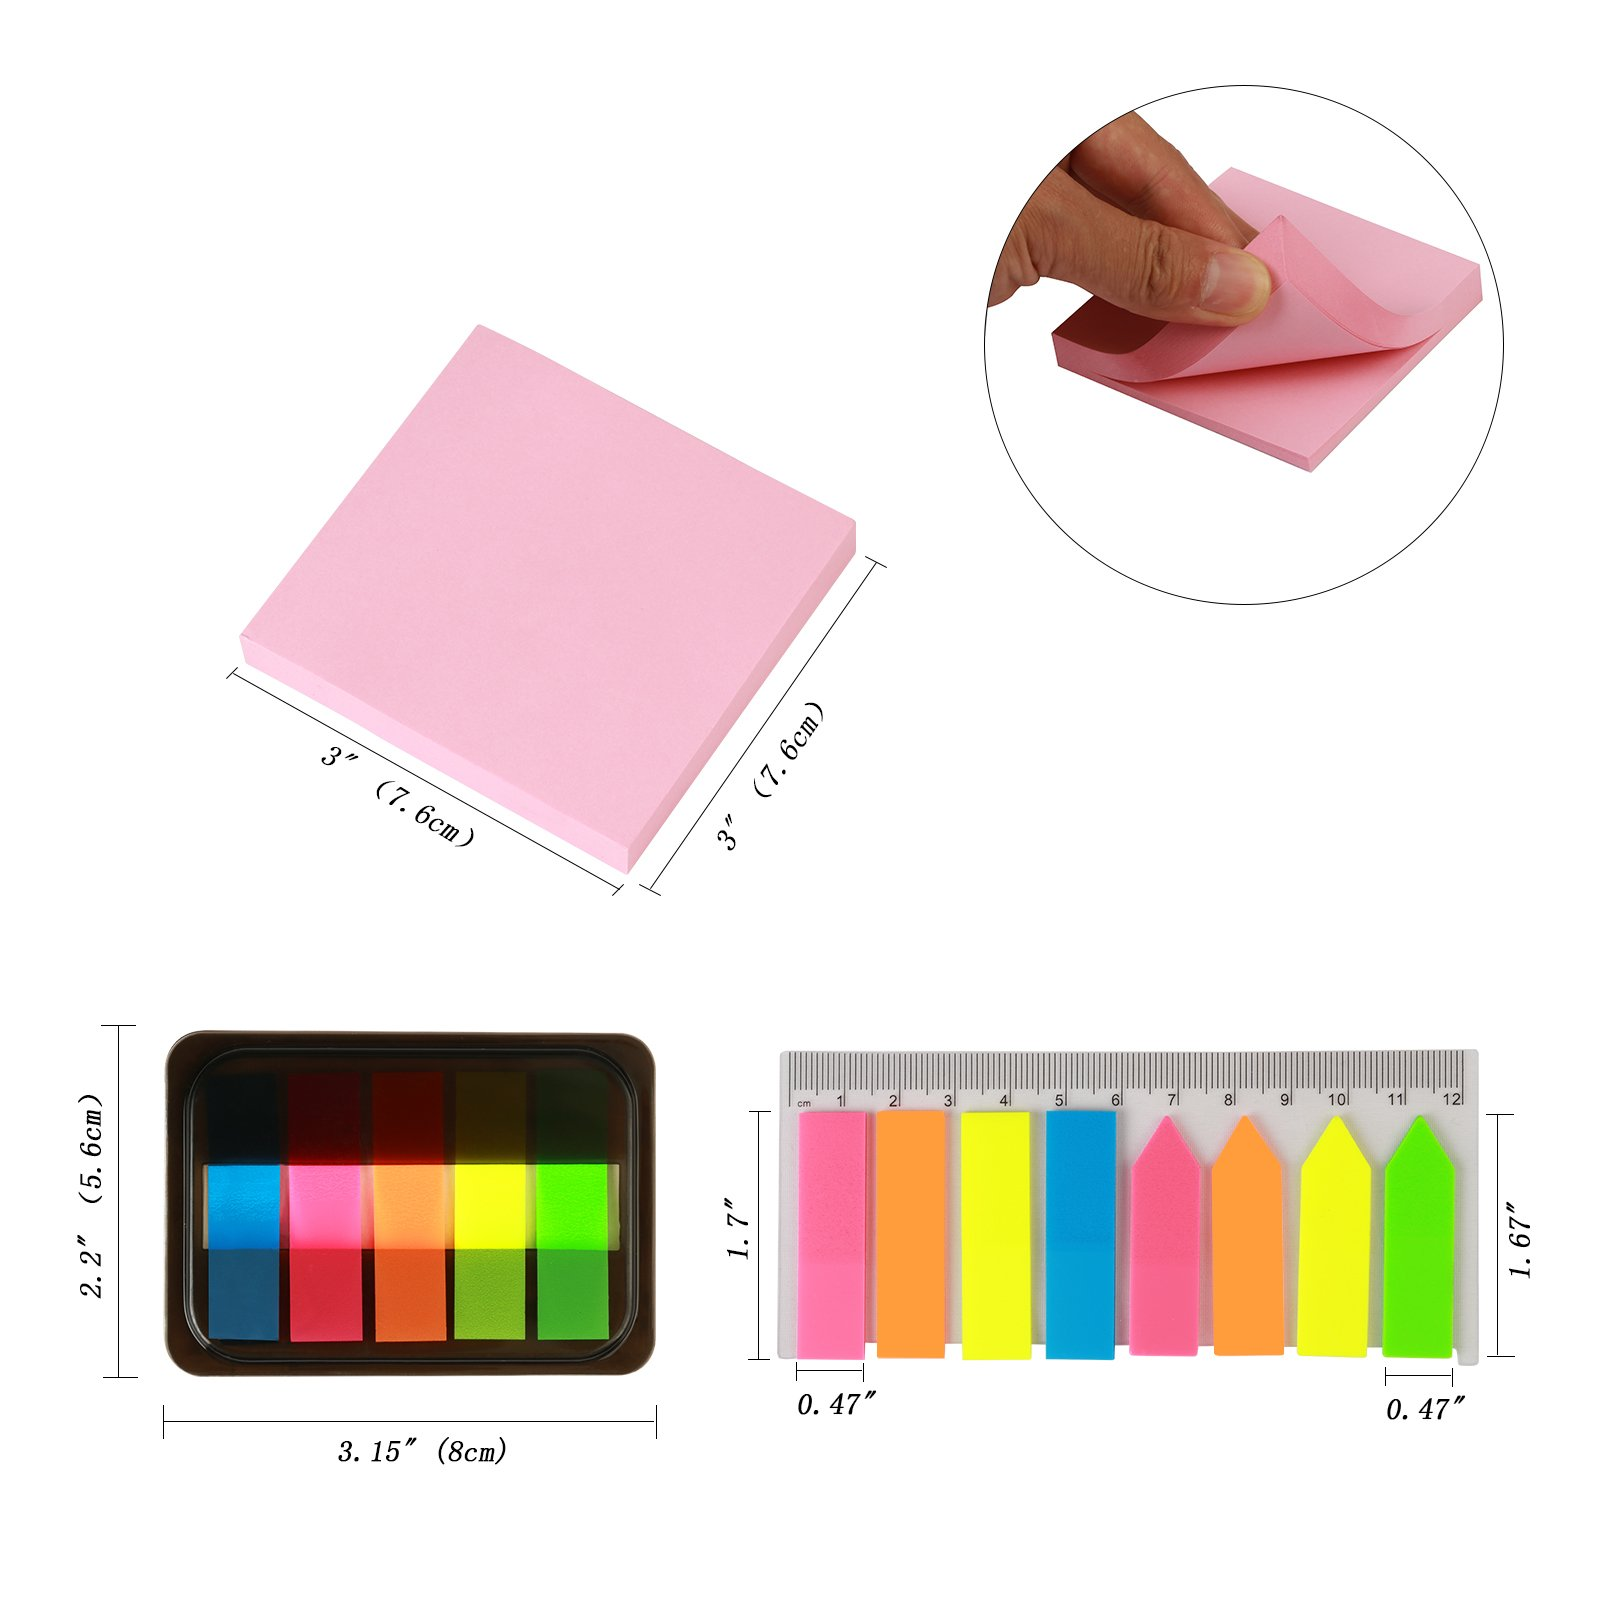 LANMOK 2640 pcs Sticky Notes Neon Pop-up Index Tabs Translucent Page Marker with Rectangular Ruler for Office Home Notebook Document